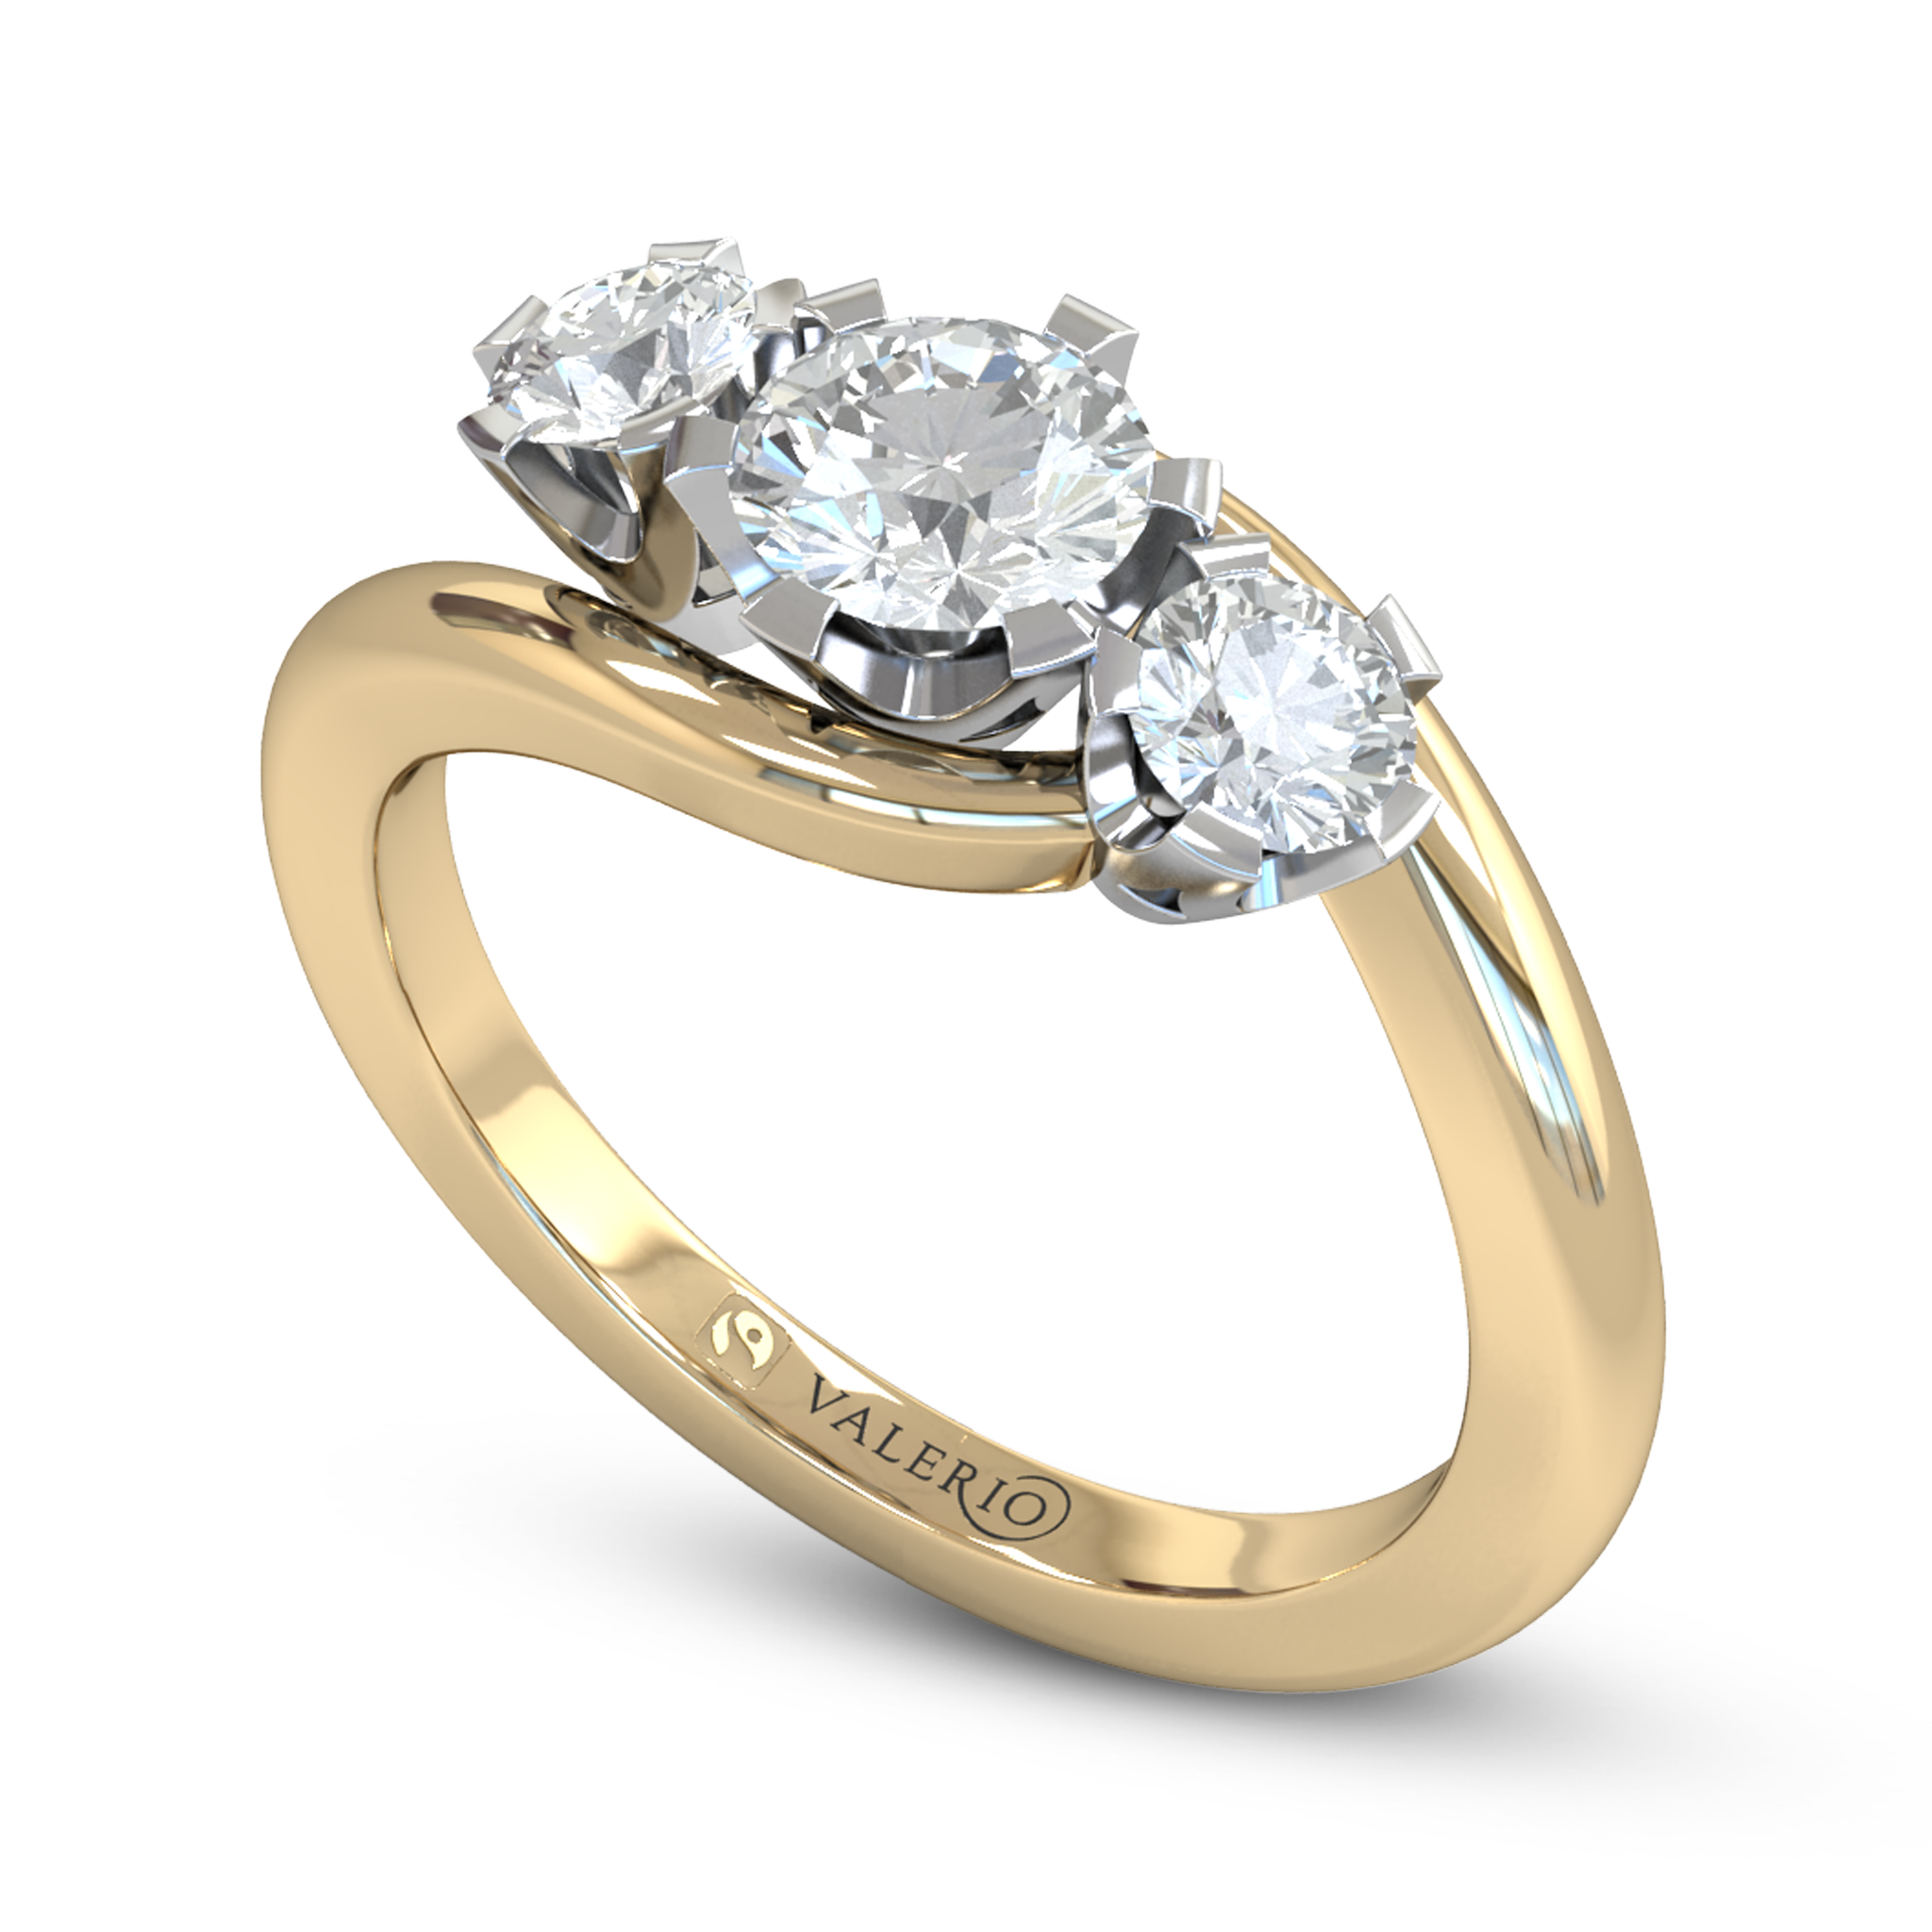 rings band products fine gold pure enlarged wedding realreal ring the jewelry